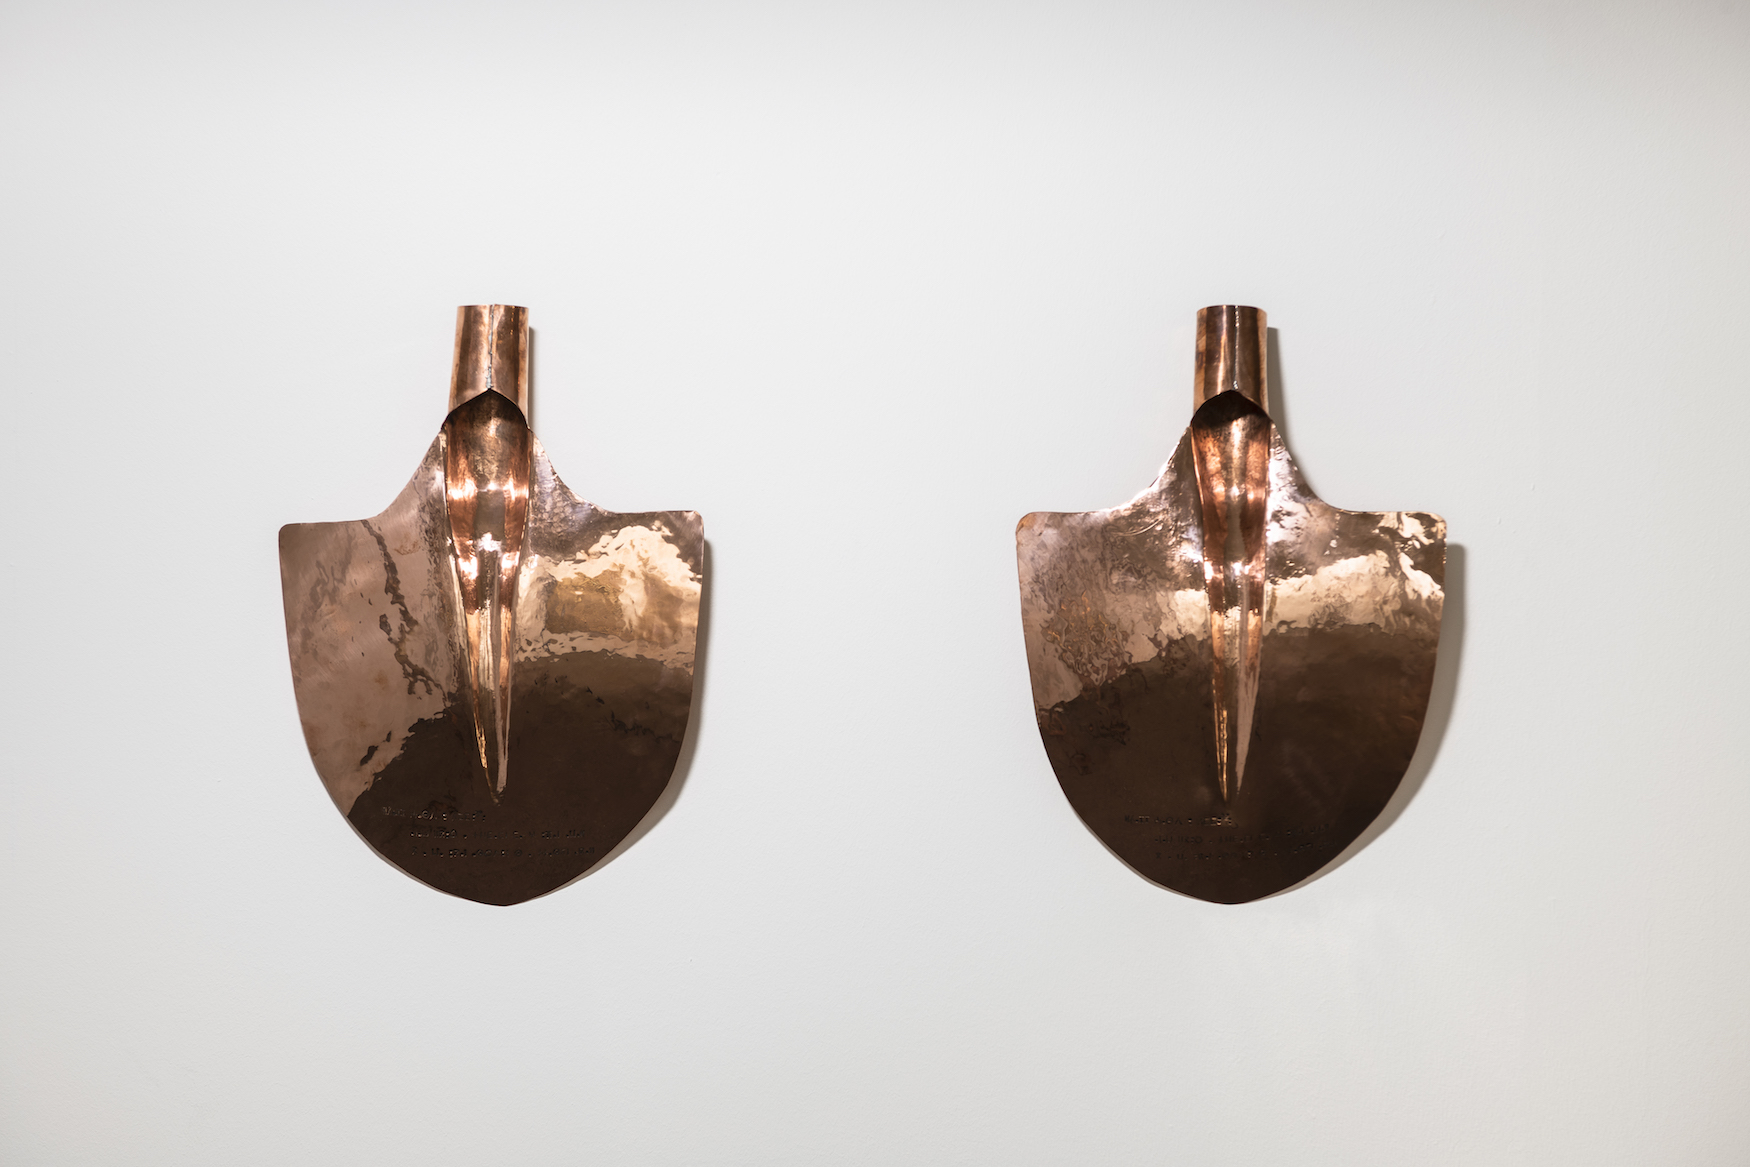 Ilssawn Wchemnin / Lamgues tatouées, 2018, hammered and engraved copper, 29 x 46 cm (each)